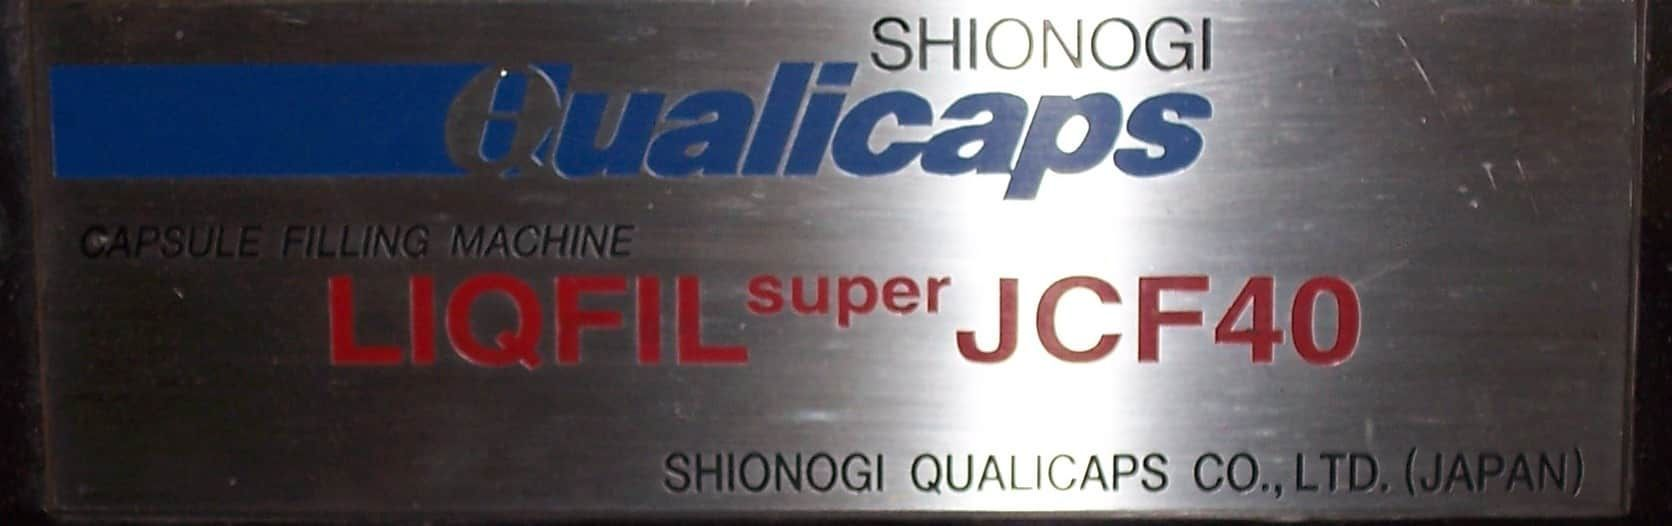 Qualicaps JCF40 Automatic Capsule Filler Auger Driven Automatic Capsule Filler